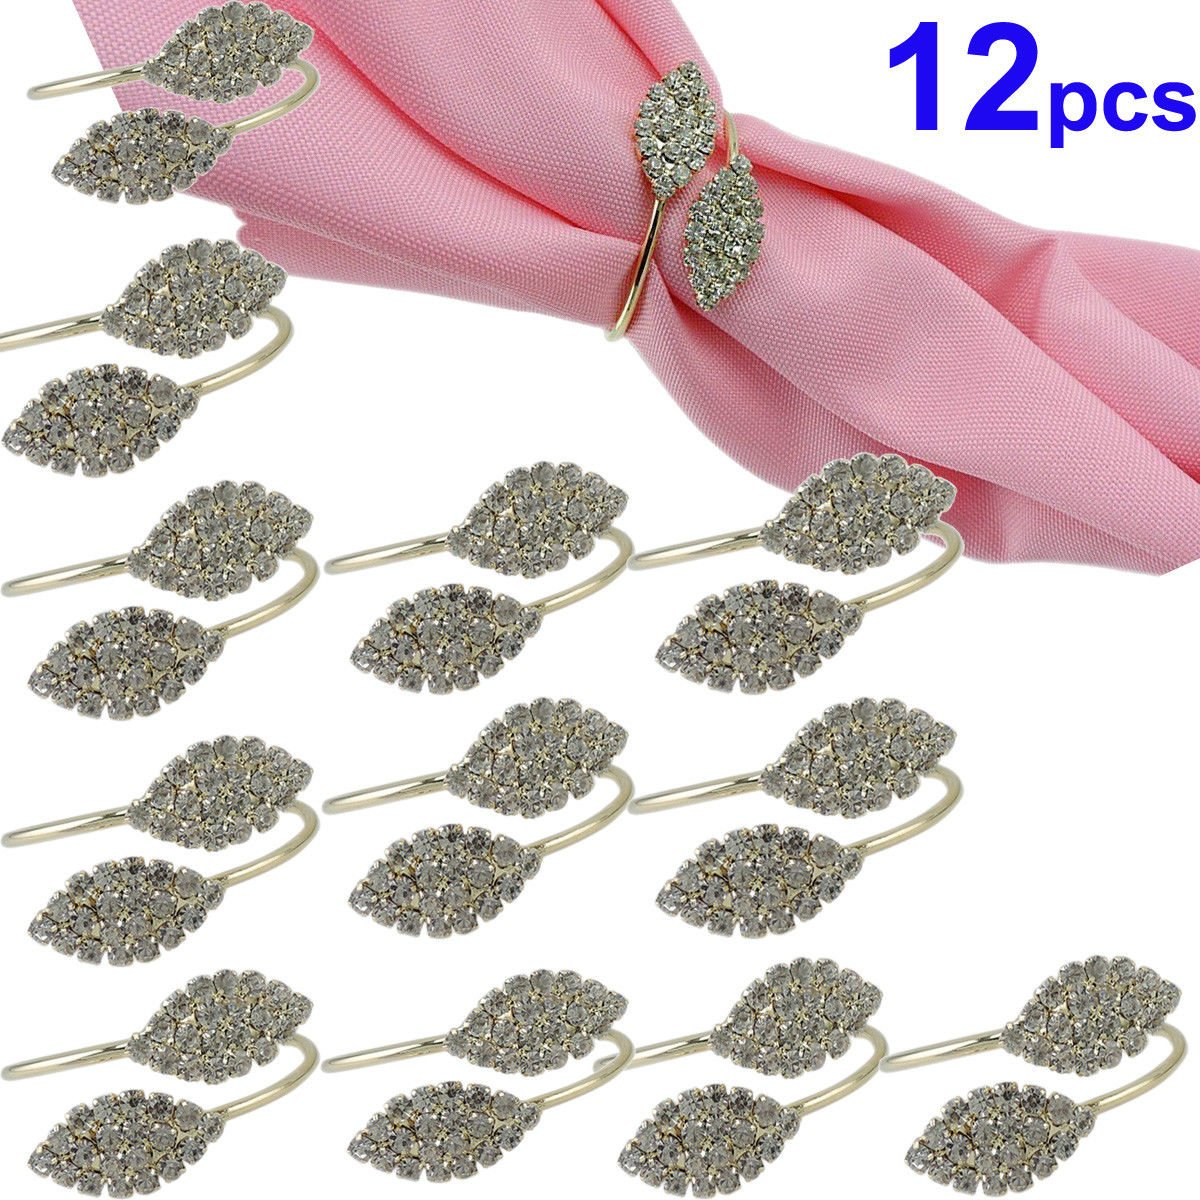 TOPCHANCES Silver Napkin Rings Set of 12 Pcs Rhinestone Napkin Ring Handmade Serviette Buckle Holders for Wedding and Party Dinner Table Decoration